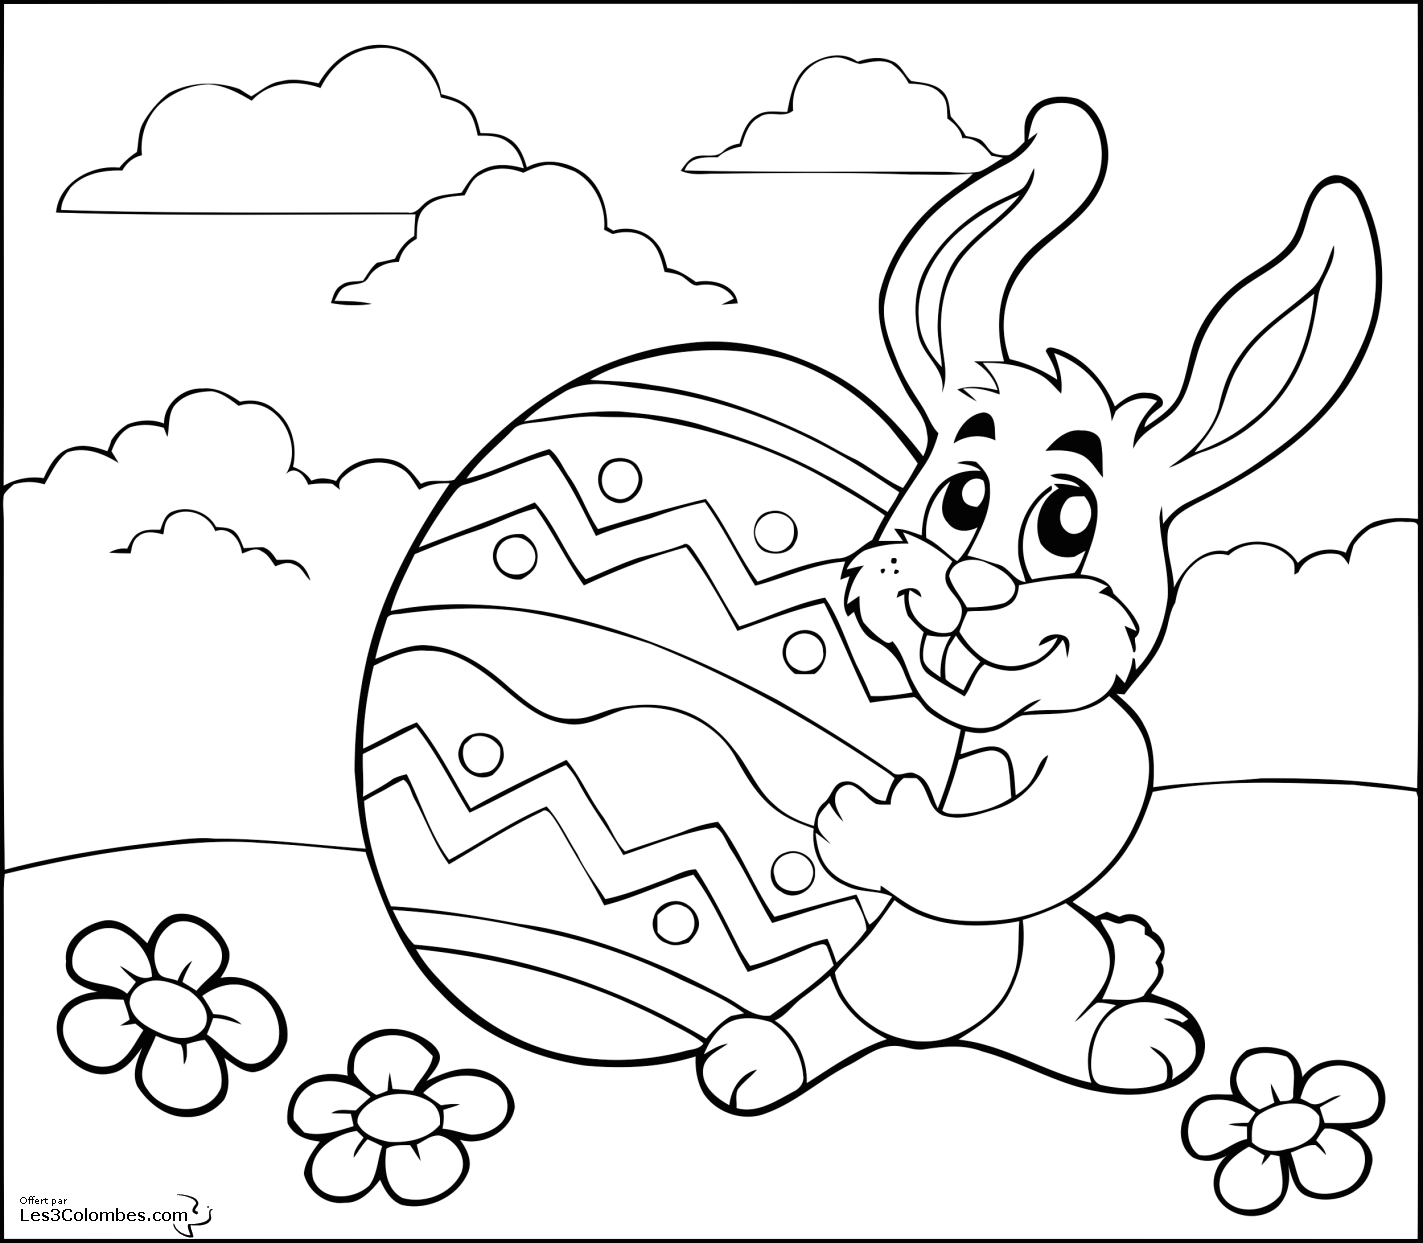 coloriage dessiner lapin avec oeuf de paques. Black Bedroom Furniture Sets. Home Design Ideas